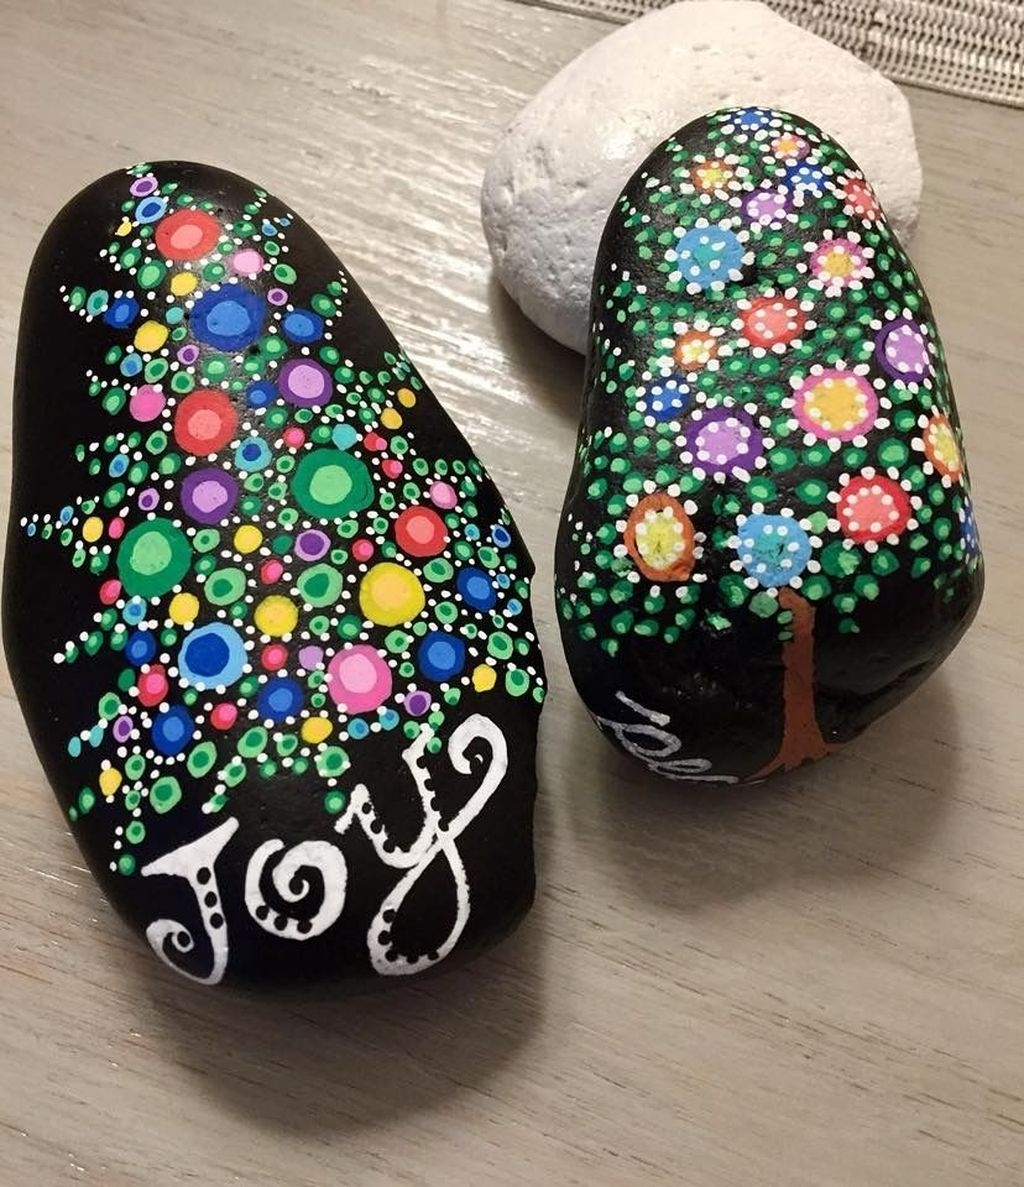 Sweet Rock Painting Design Ideas For Your Home Decor 12